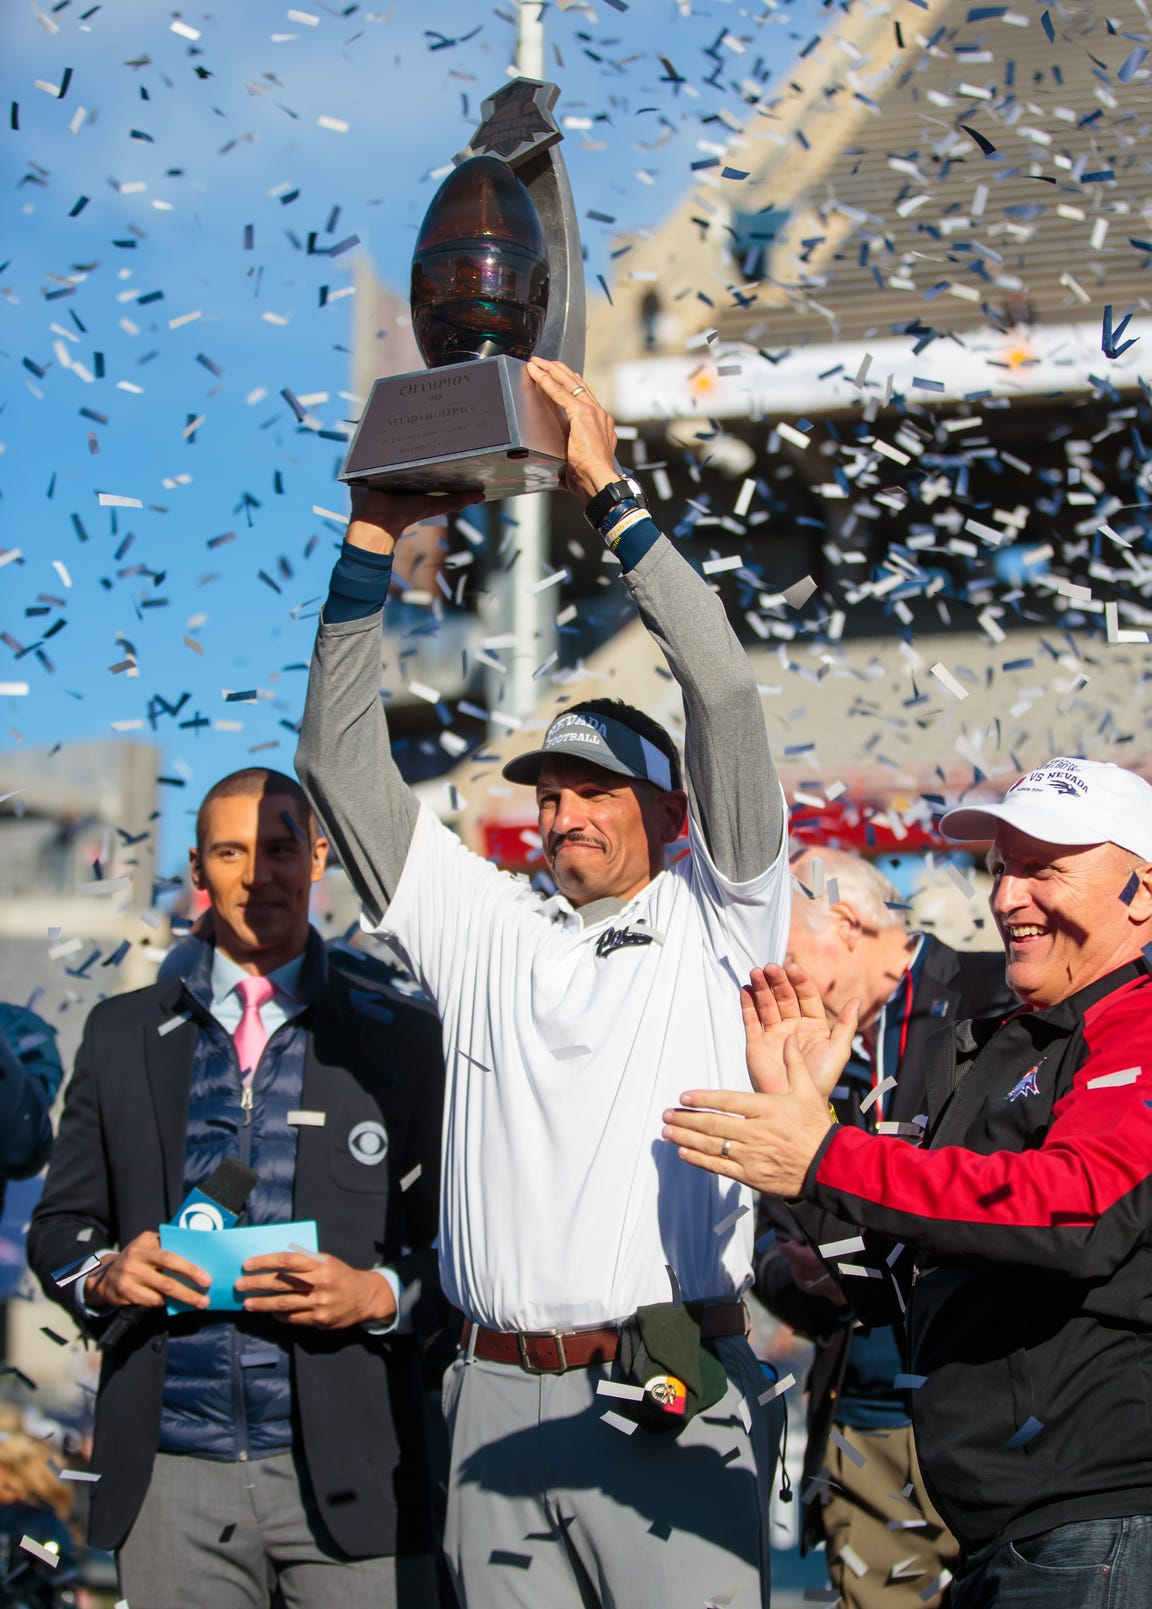 Dec 29, 2018: Nevada Wolf Pack head coach Jay Norvell celebrates with the trophy after defeating the Arkansas State Red Wolves in overtime of the 2018 Arizona Bowl at Arizona Stadium.